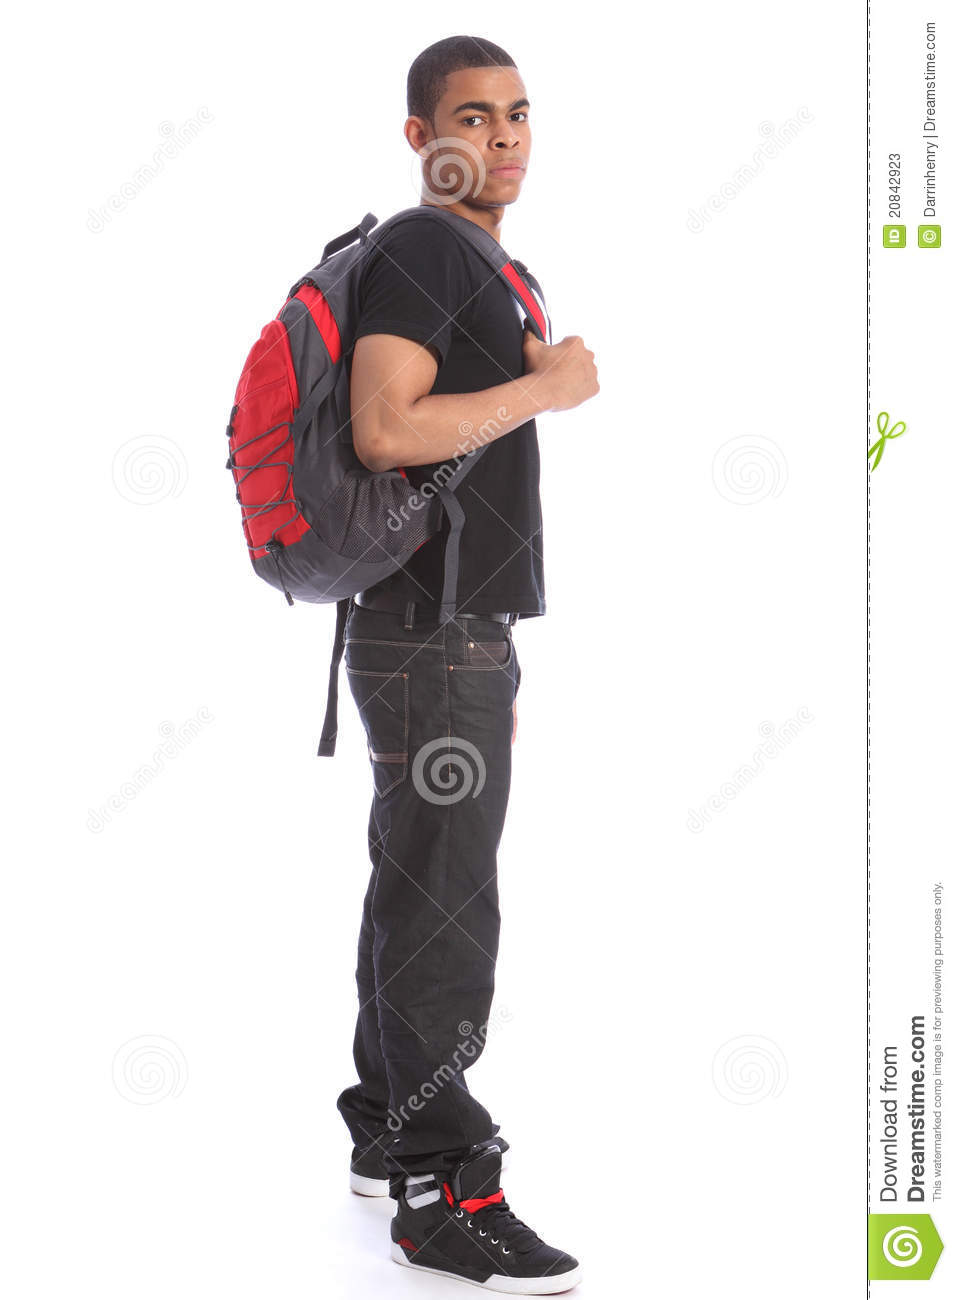 Student Wearing Jeans And T Shirt Standing With School Backpack